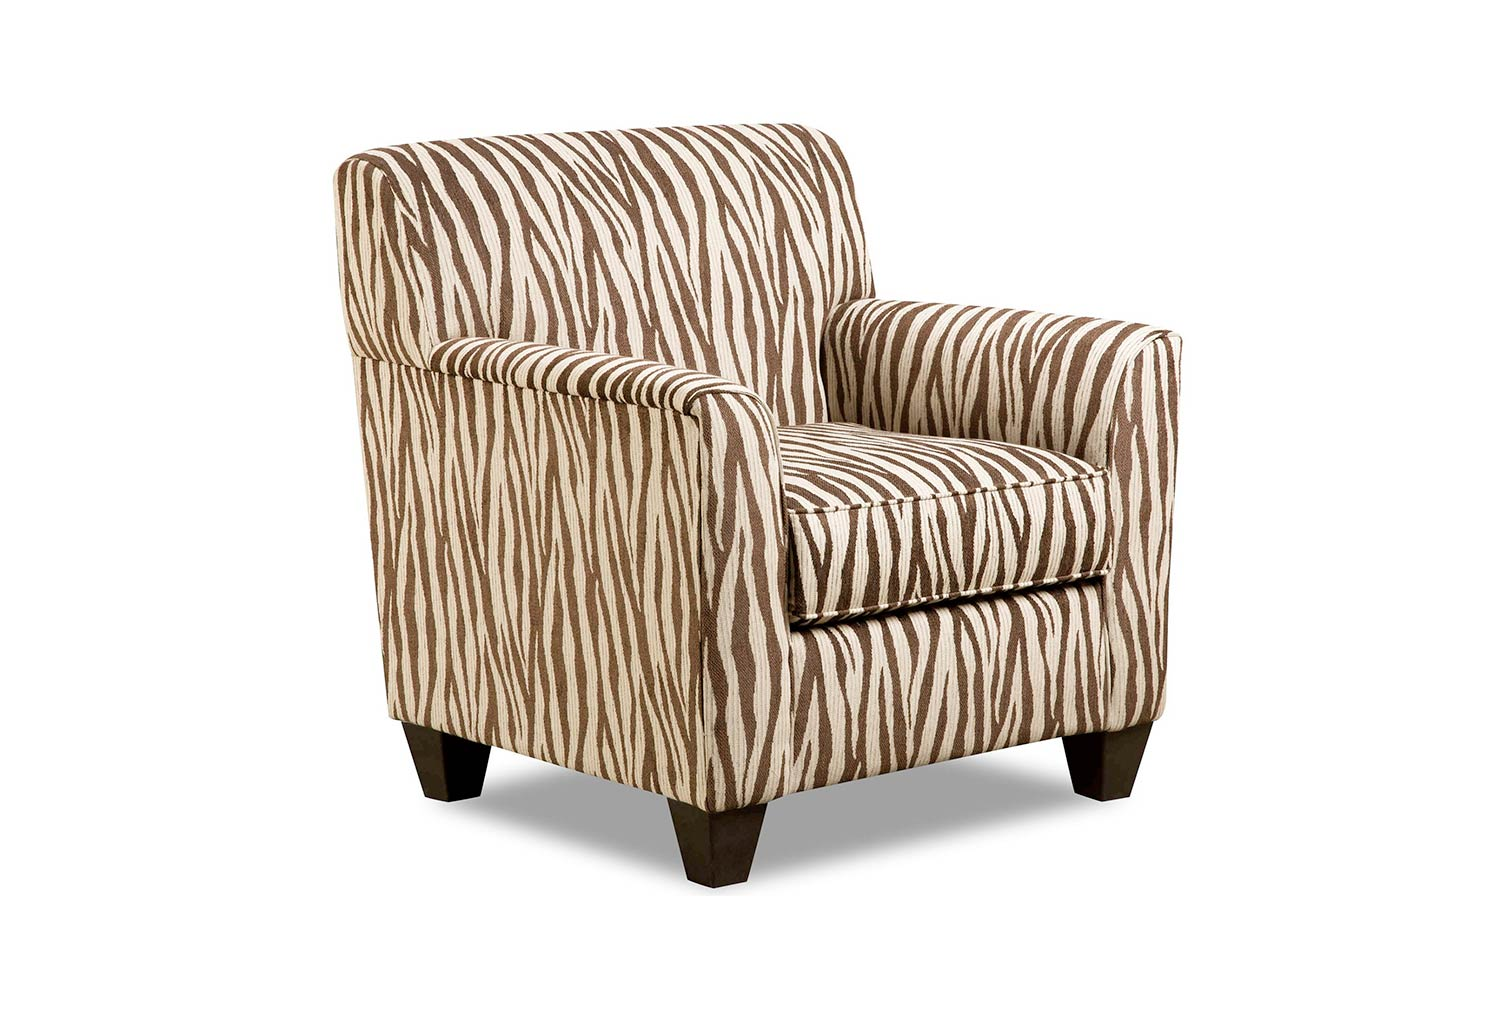 Chelsea Home Zaire Accent Chair - Zebra Chocolate